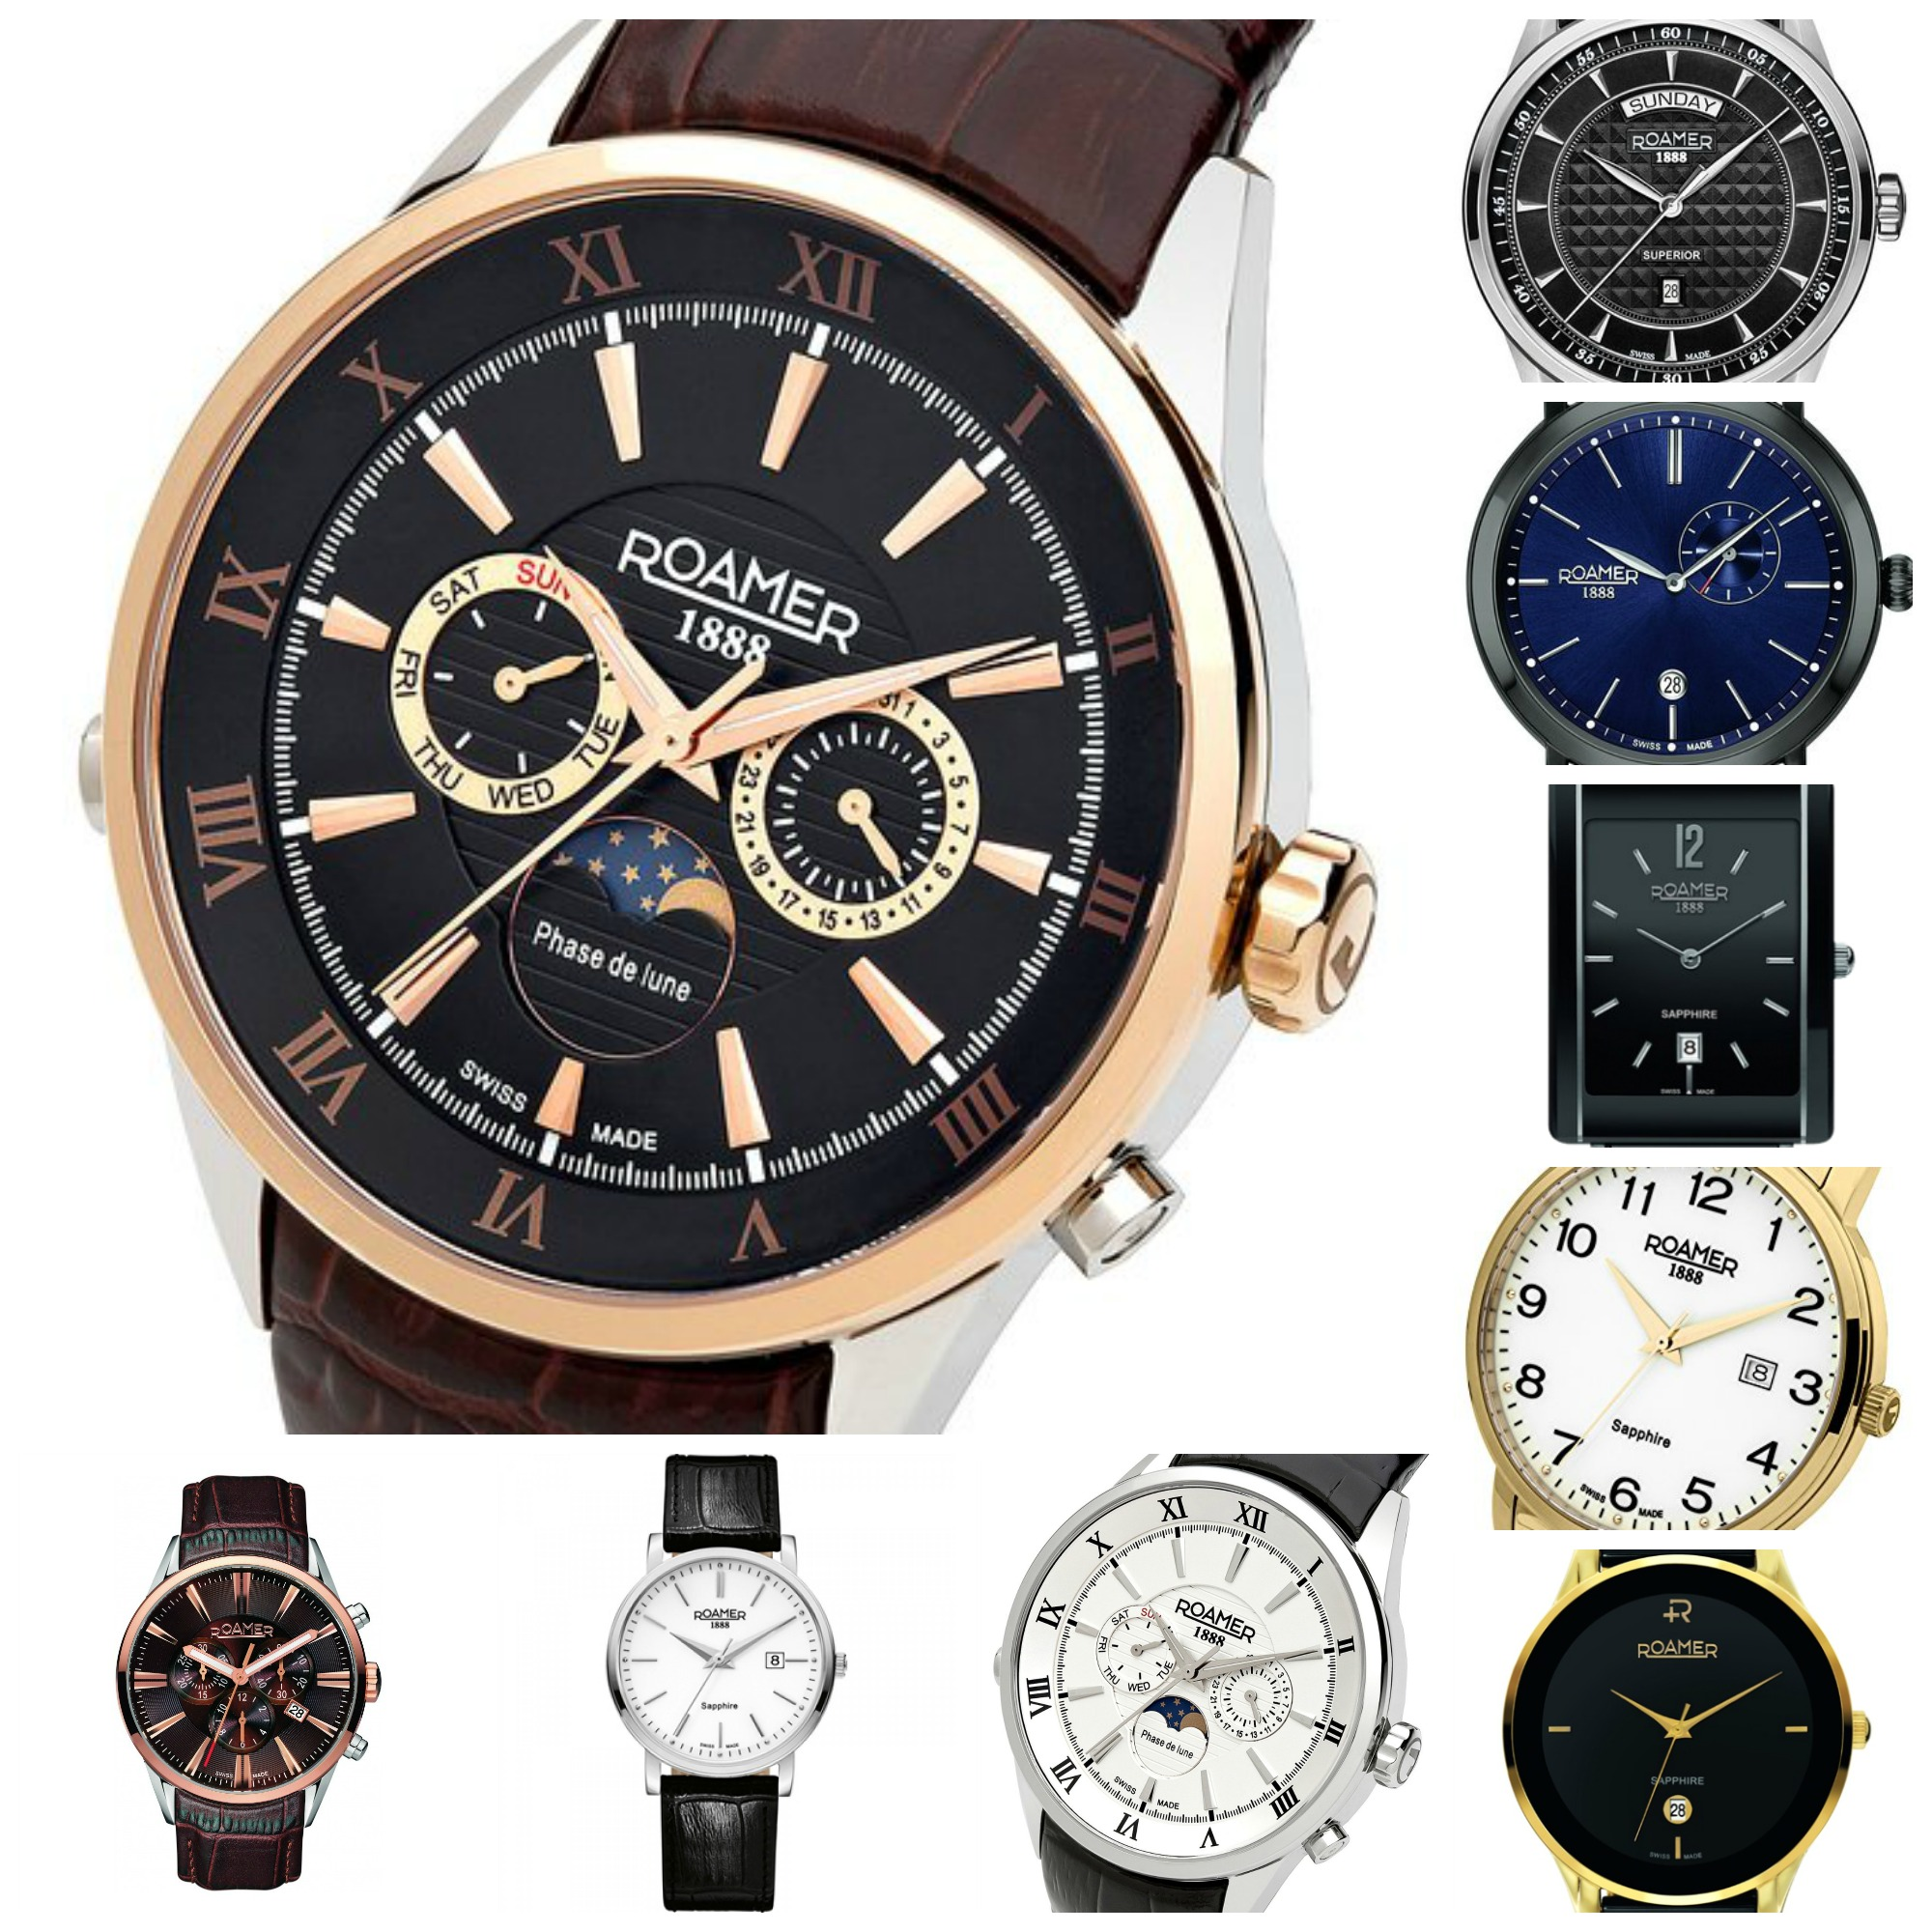 just this r share banner fifth watches with handsome to looking guys you wanted watch comments